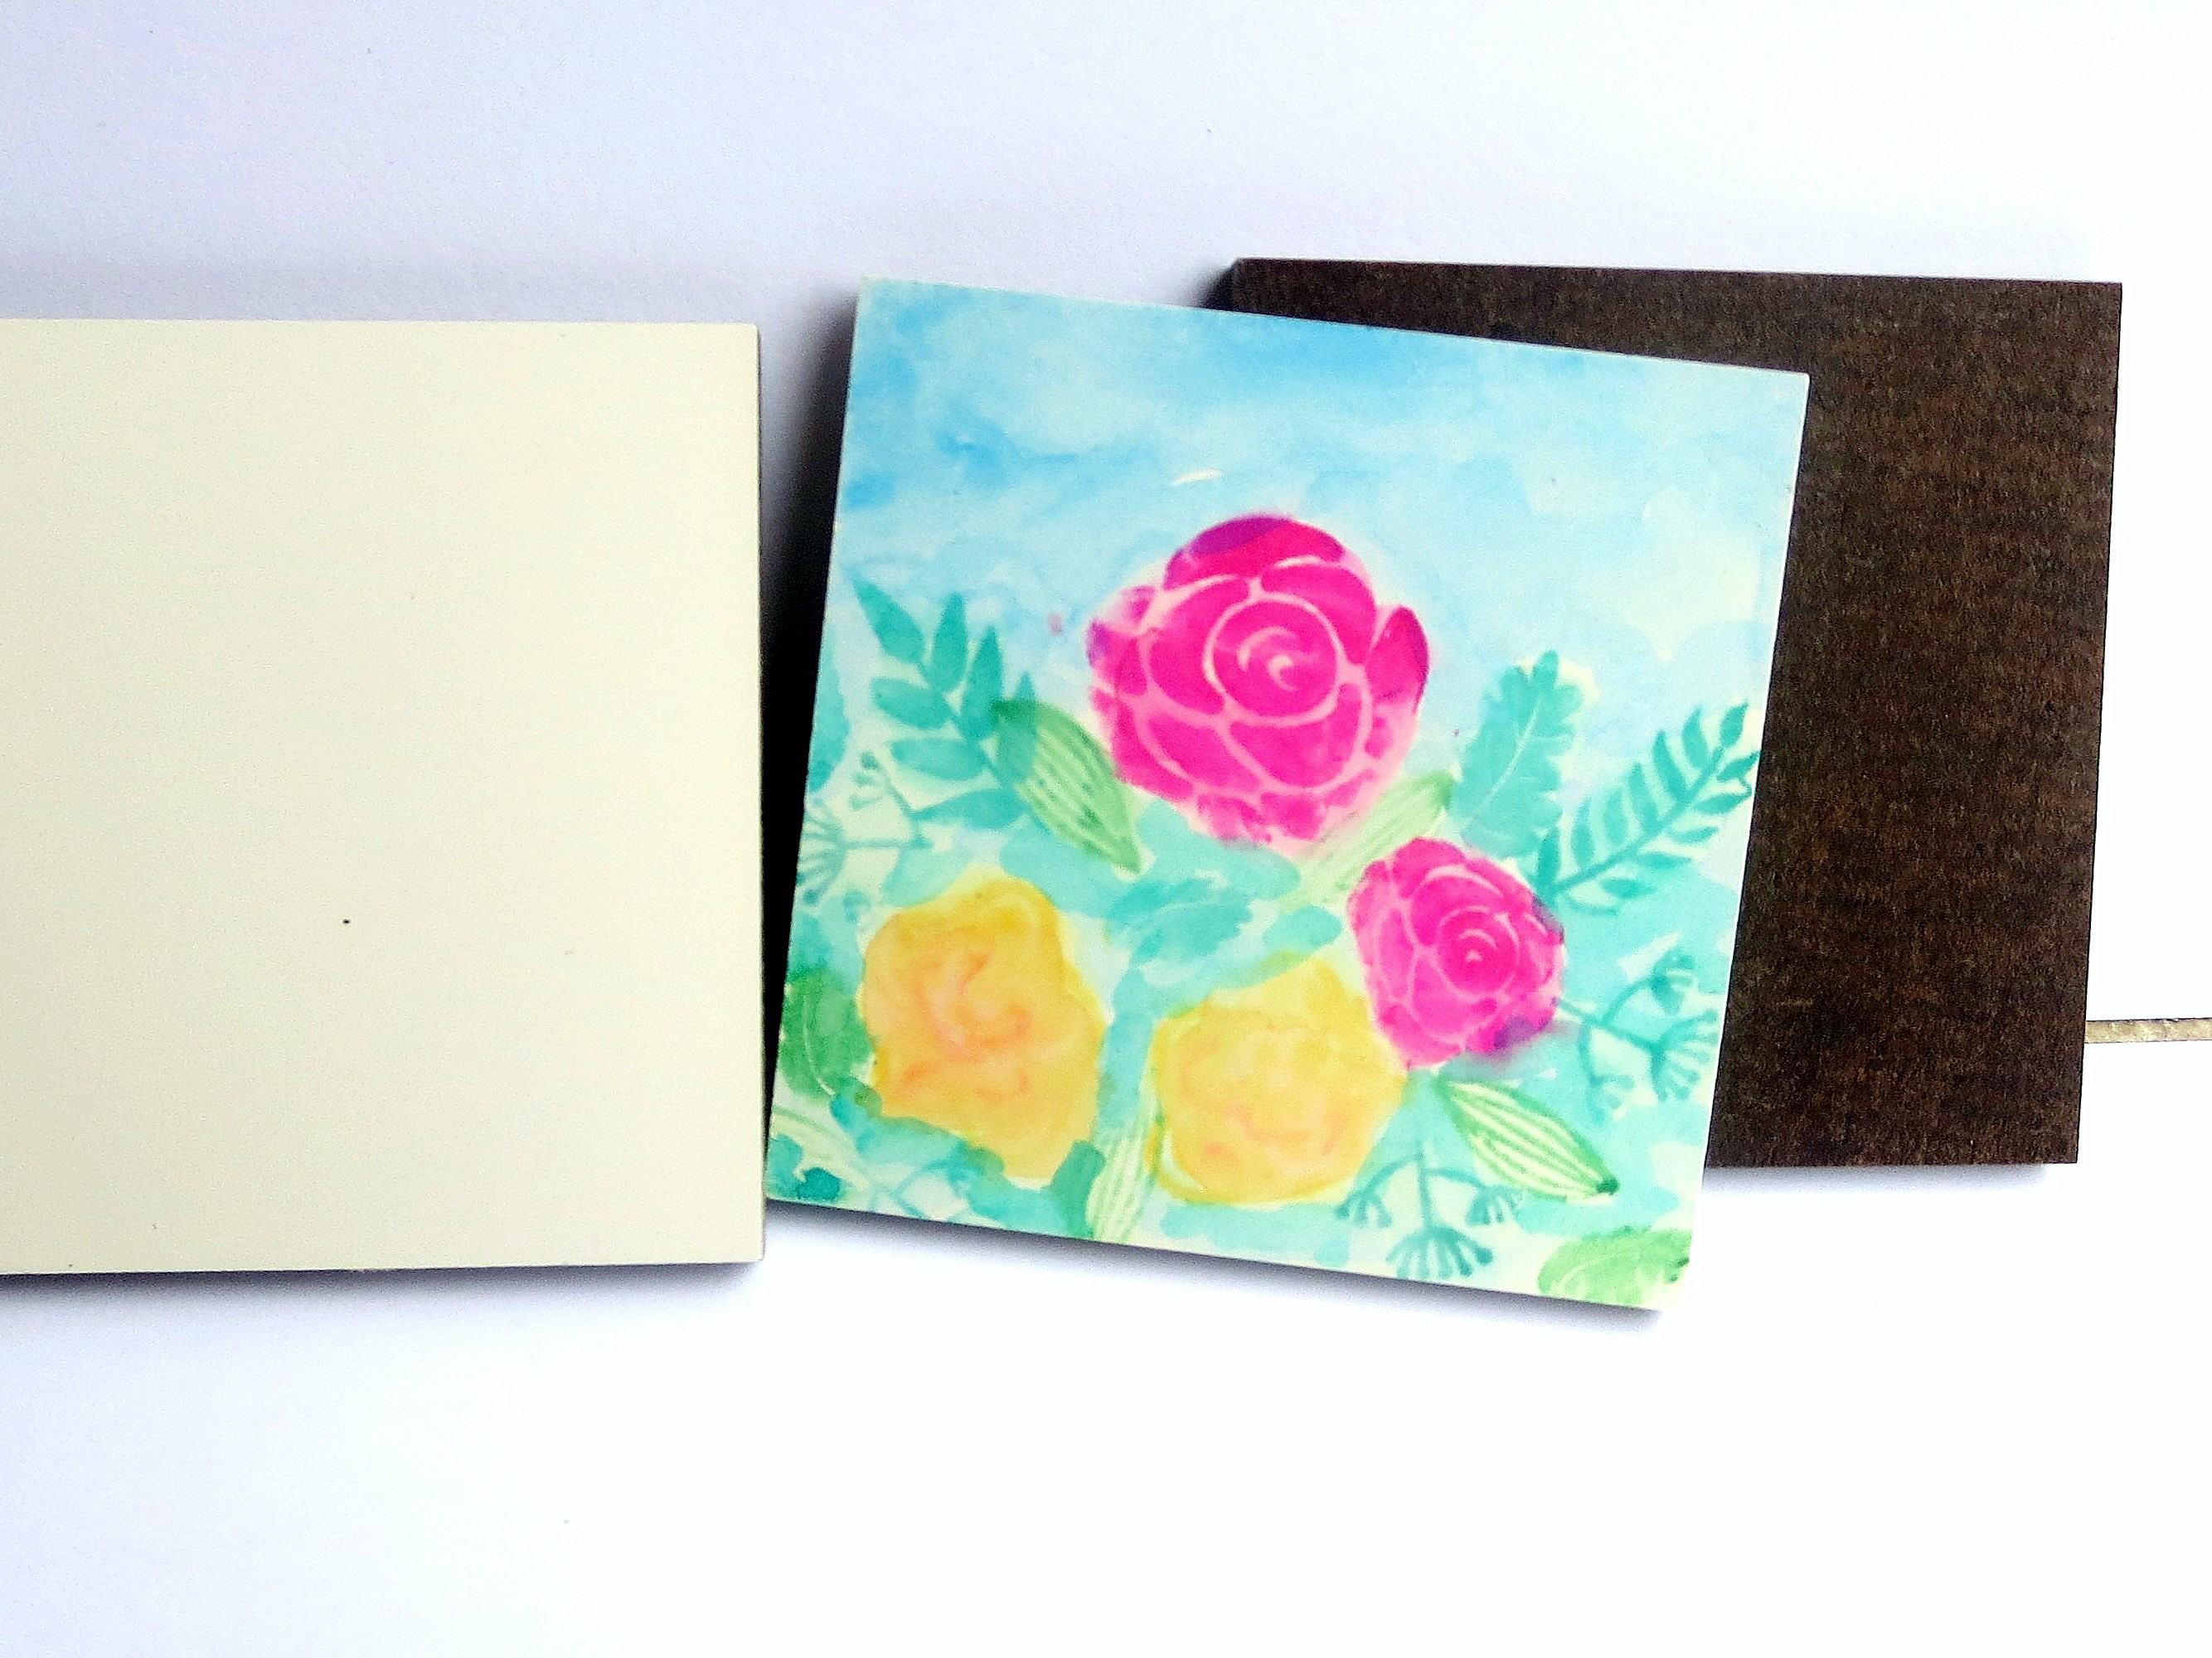 All In One Card And Gift A2z Scrapbooking Supplies